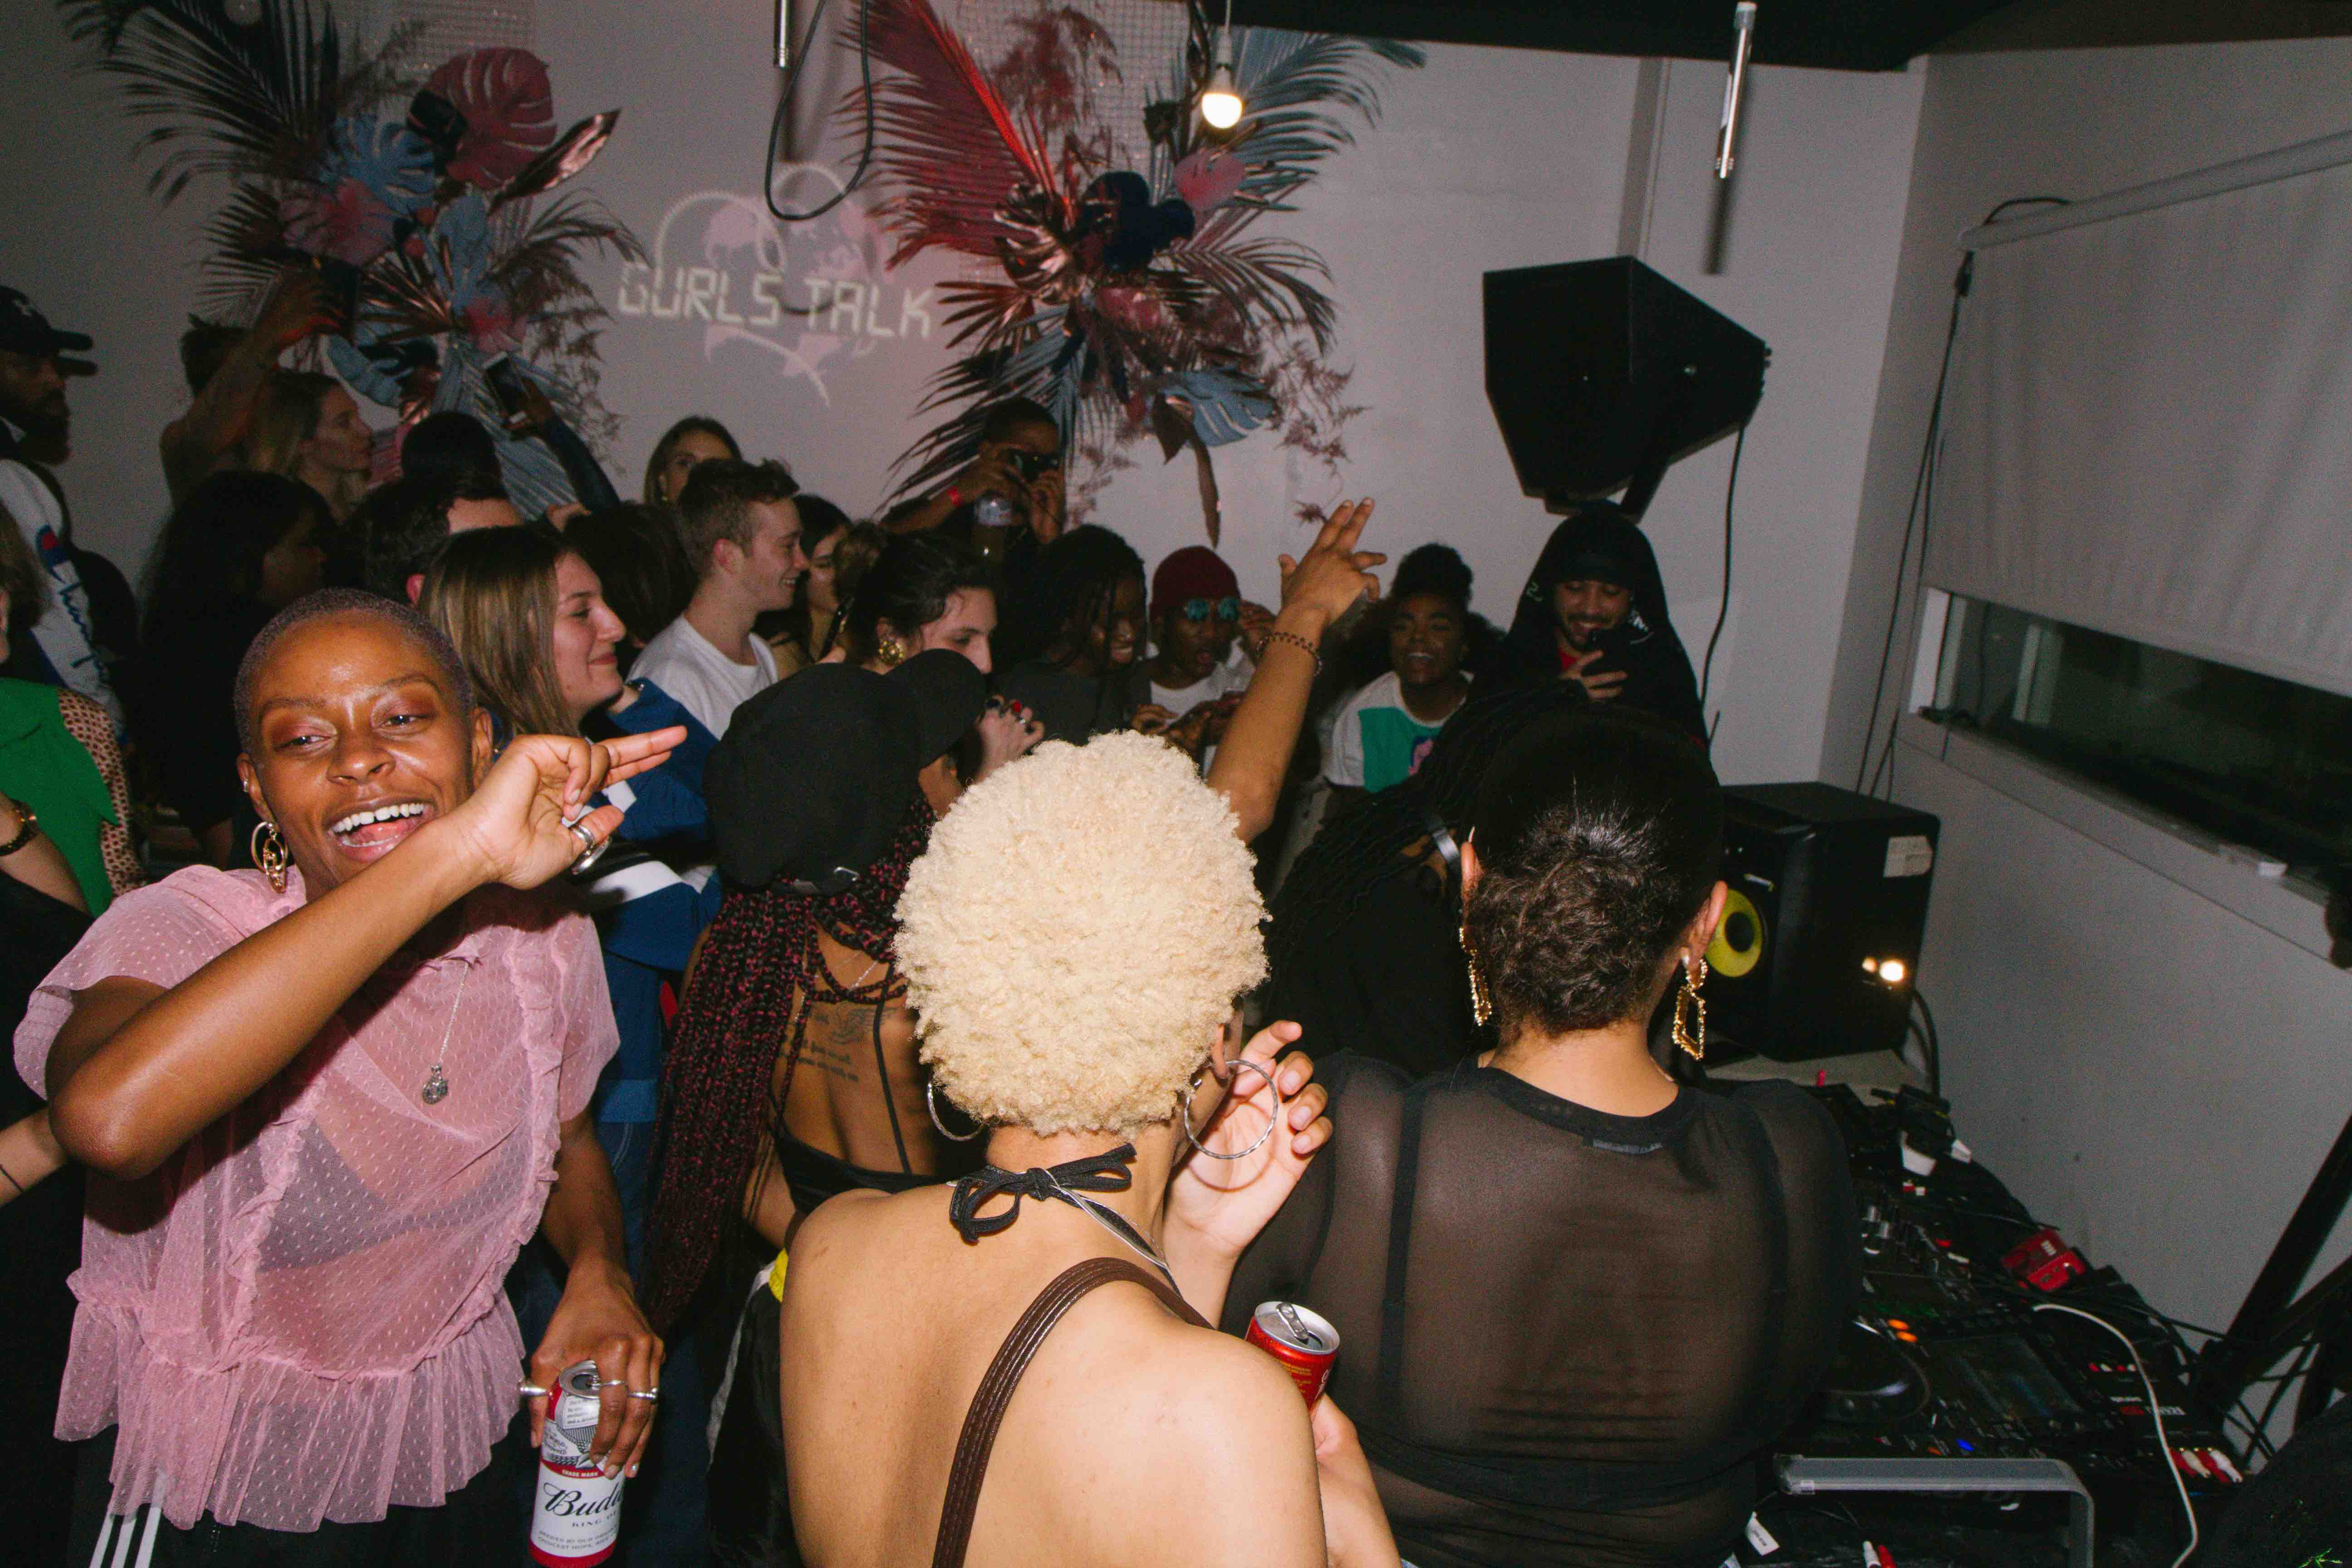 Gurls Talk Adwoa Aboah international women's day gig